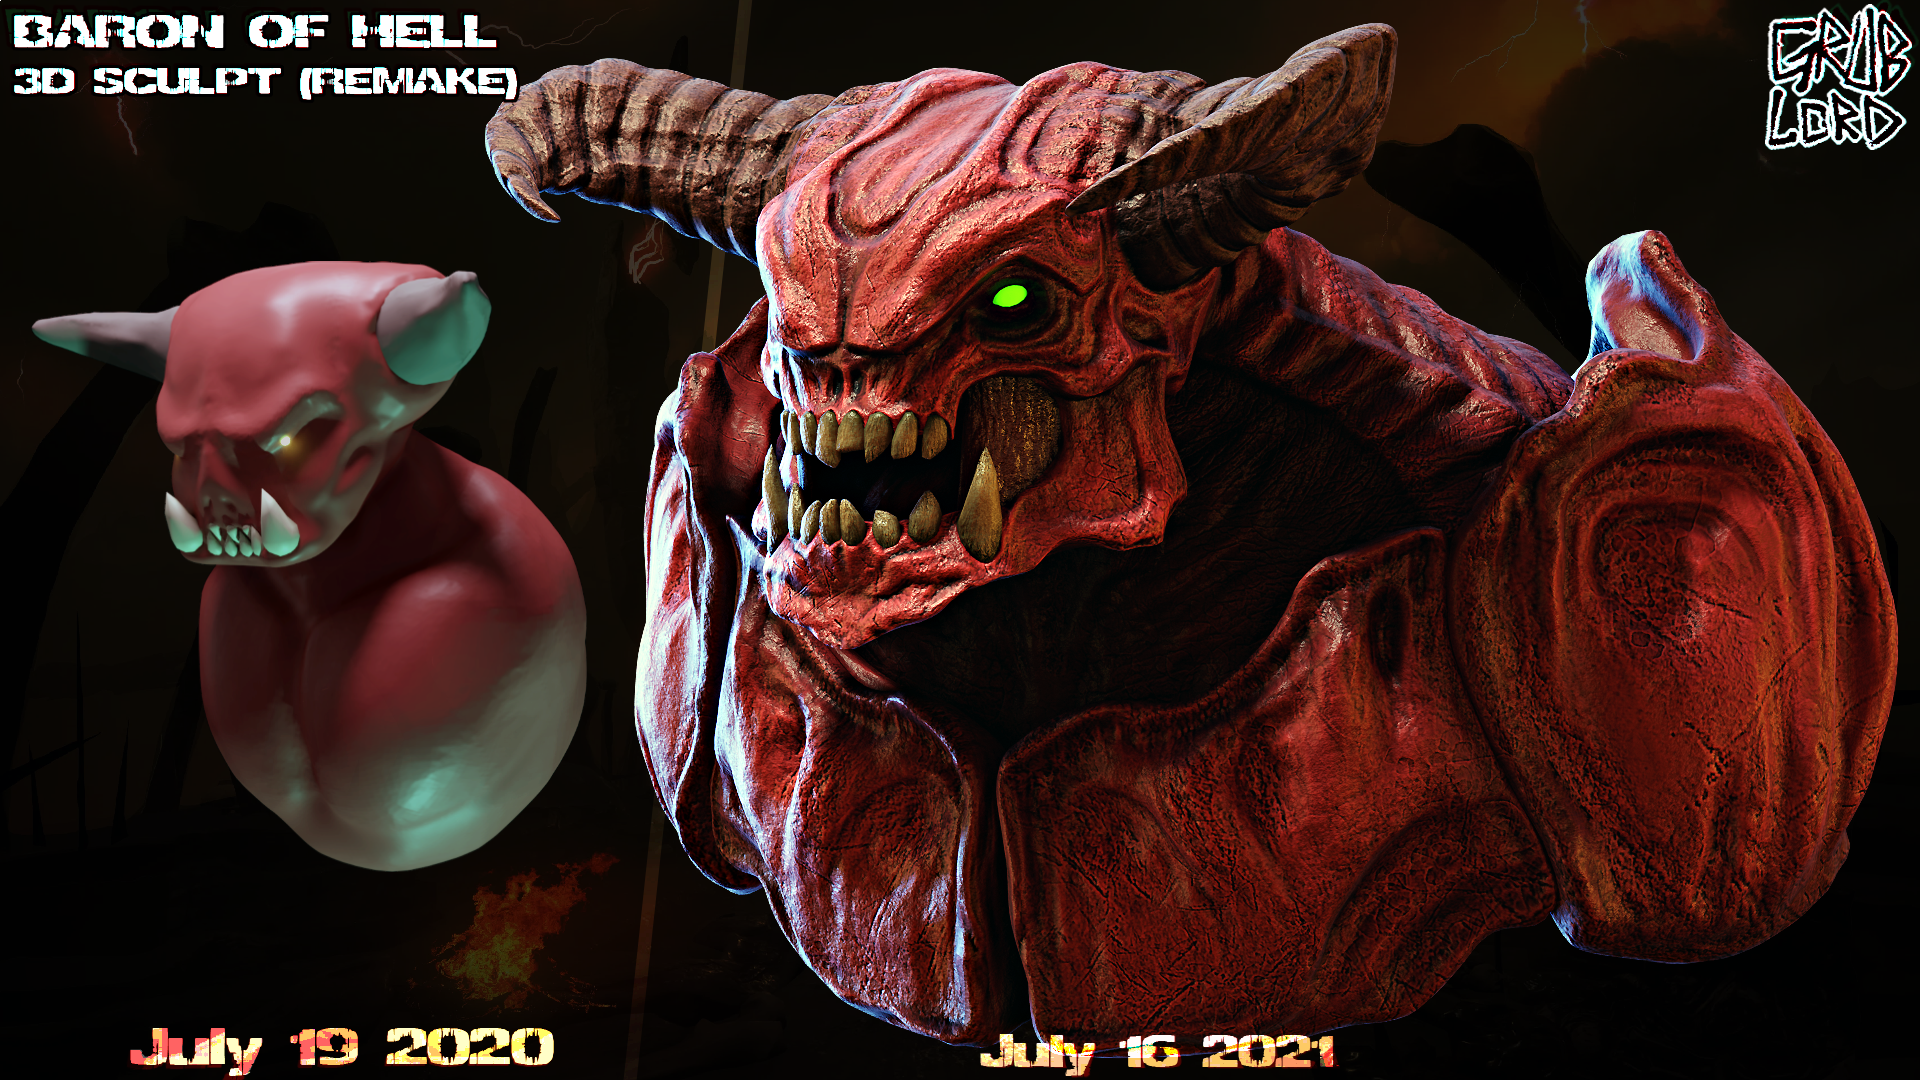 BARON OF HELL SCULPT (Remake)